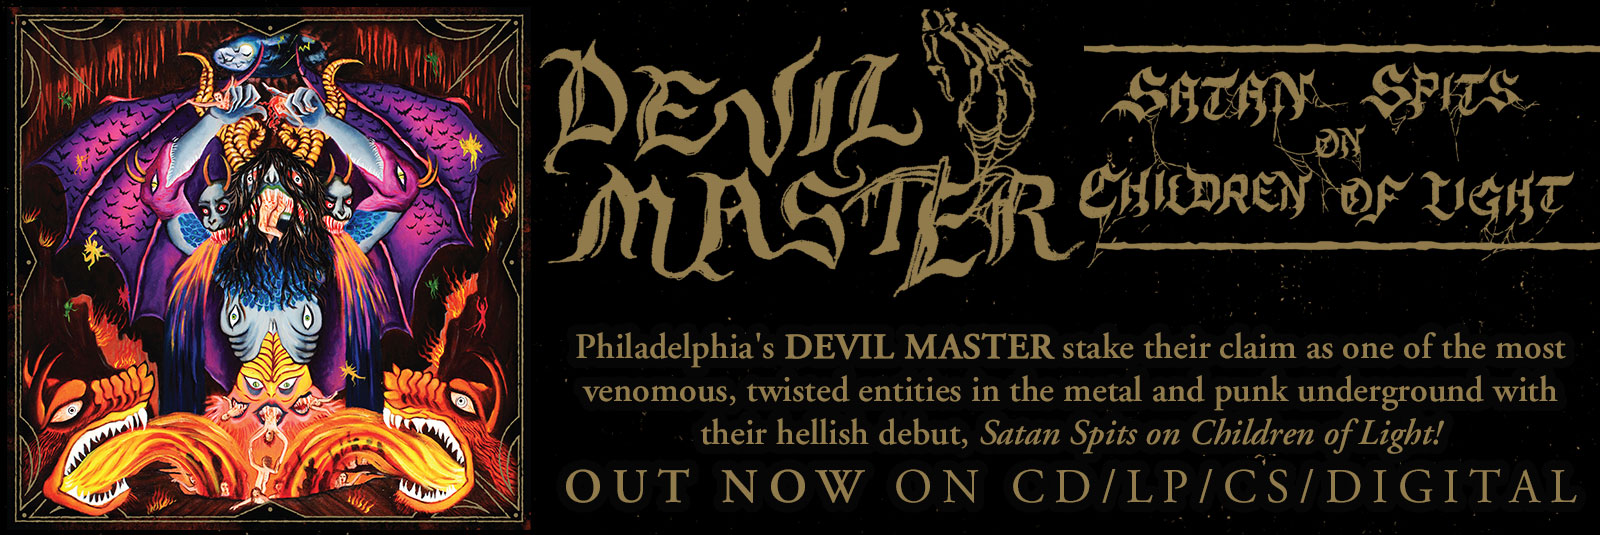 devil-master-satan-spits-on-children-of-light-black-metal-out-now